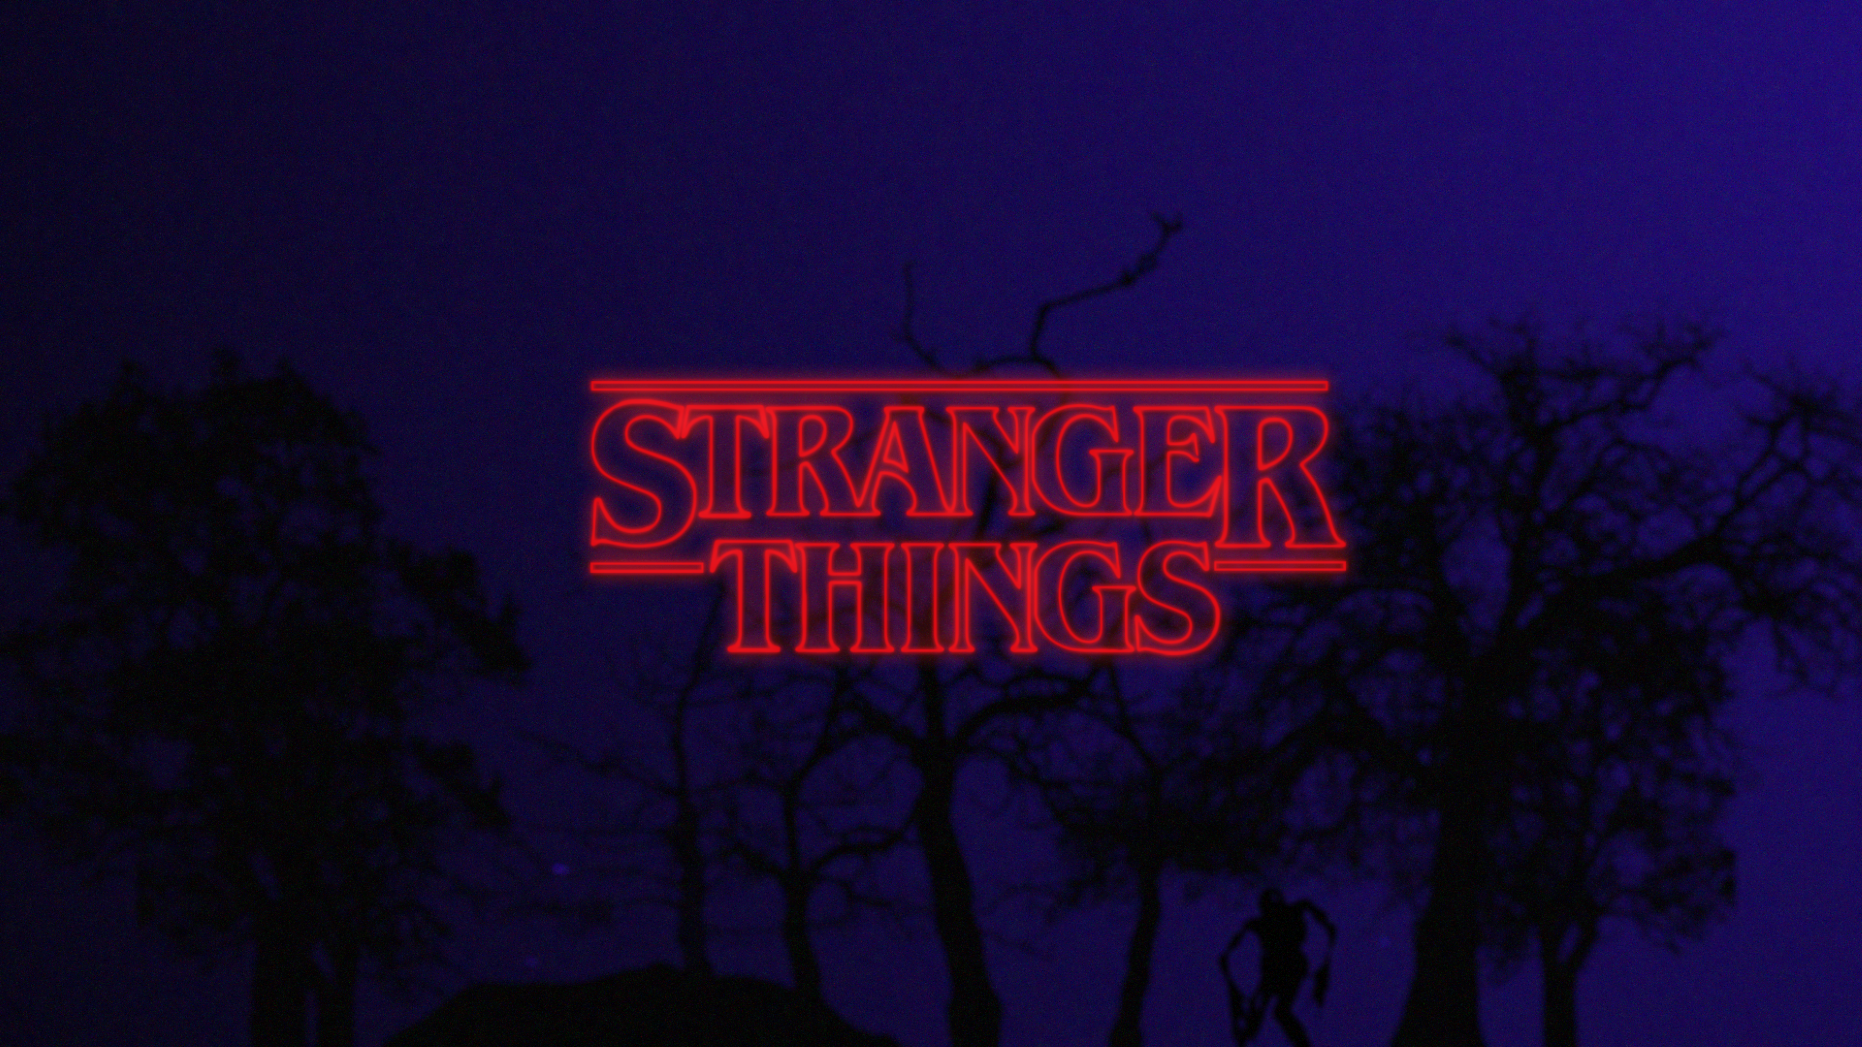 Stranger In The House Stranger Things Wallpaper Pictures To Pin On Pinterest